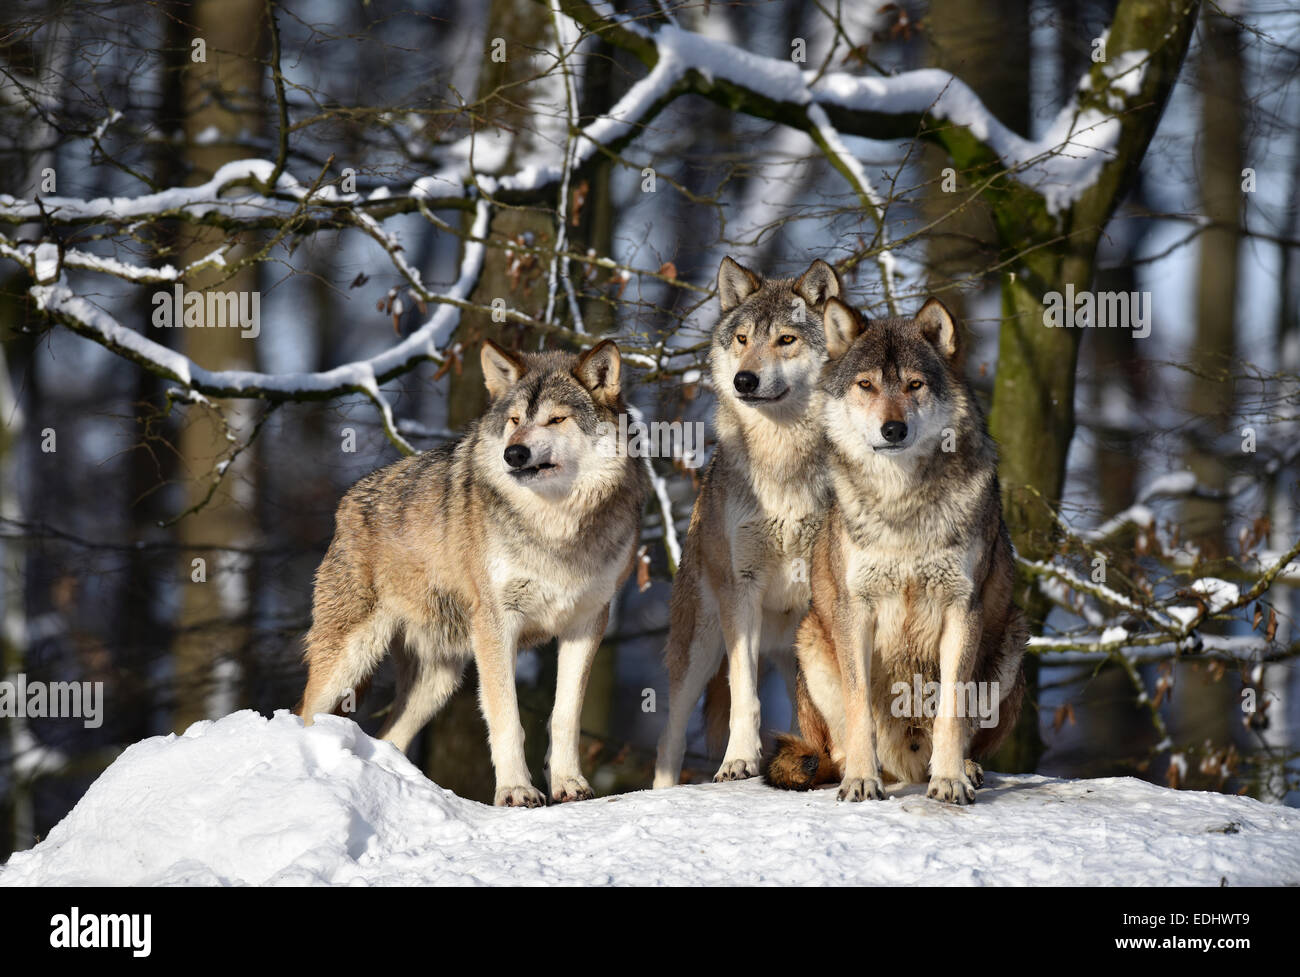 Three wolves on look out, Northwestern wolf (Canis lupus occidentalis) in the snow, captive, Baden-Württemberg, - Stock Image